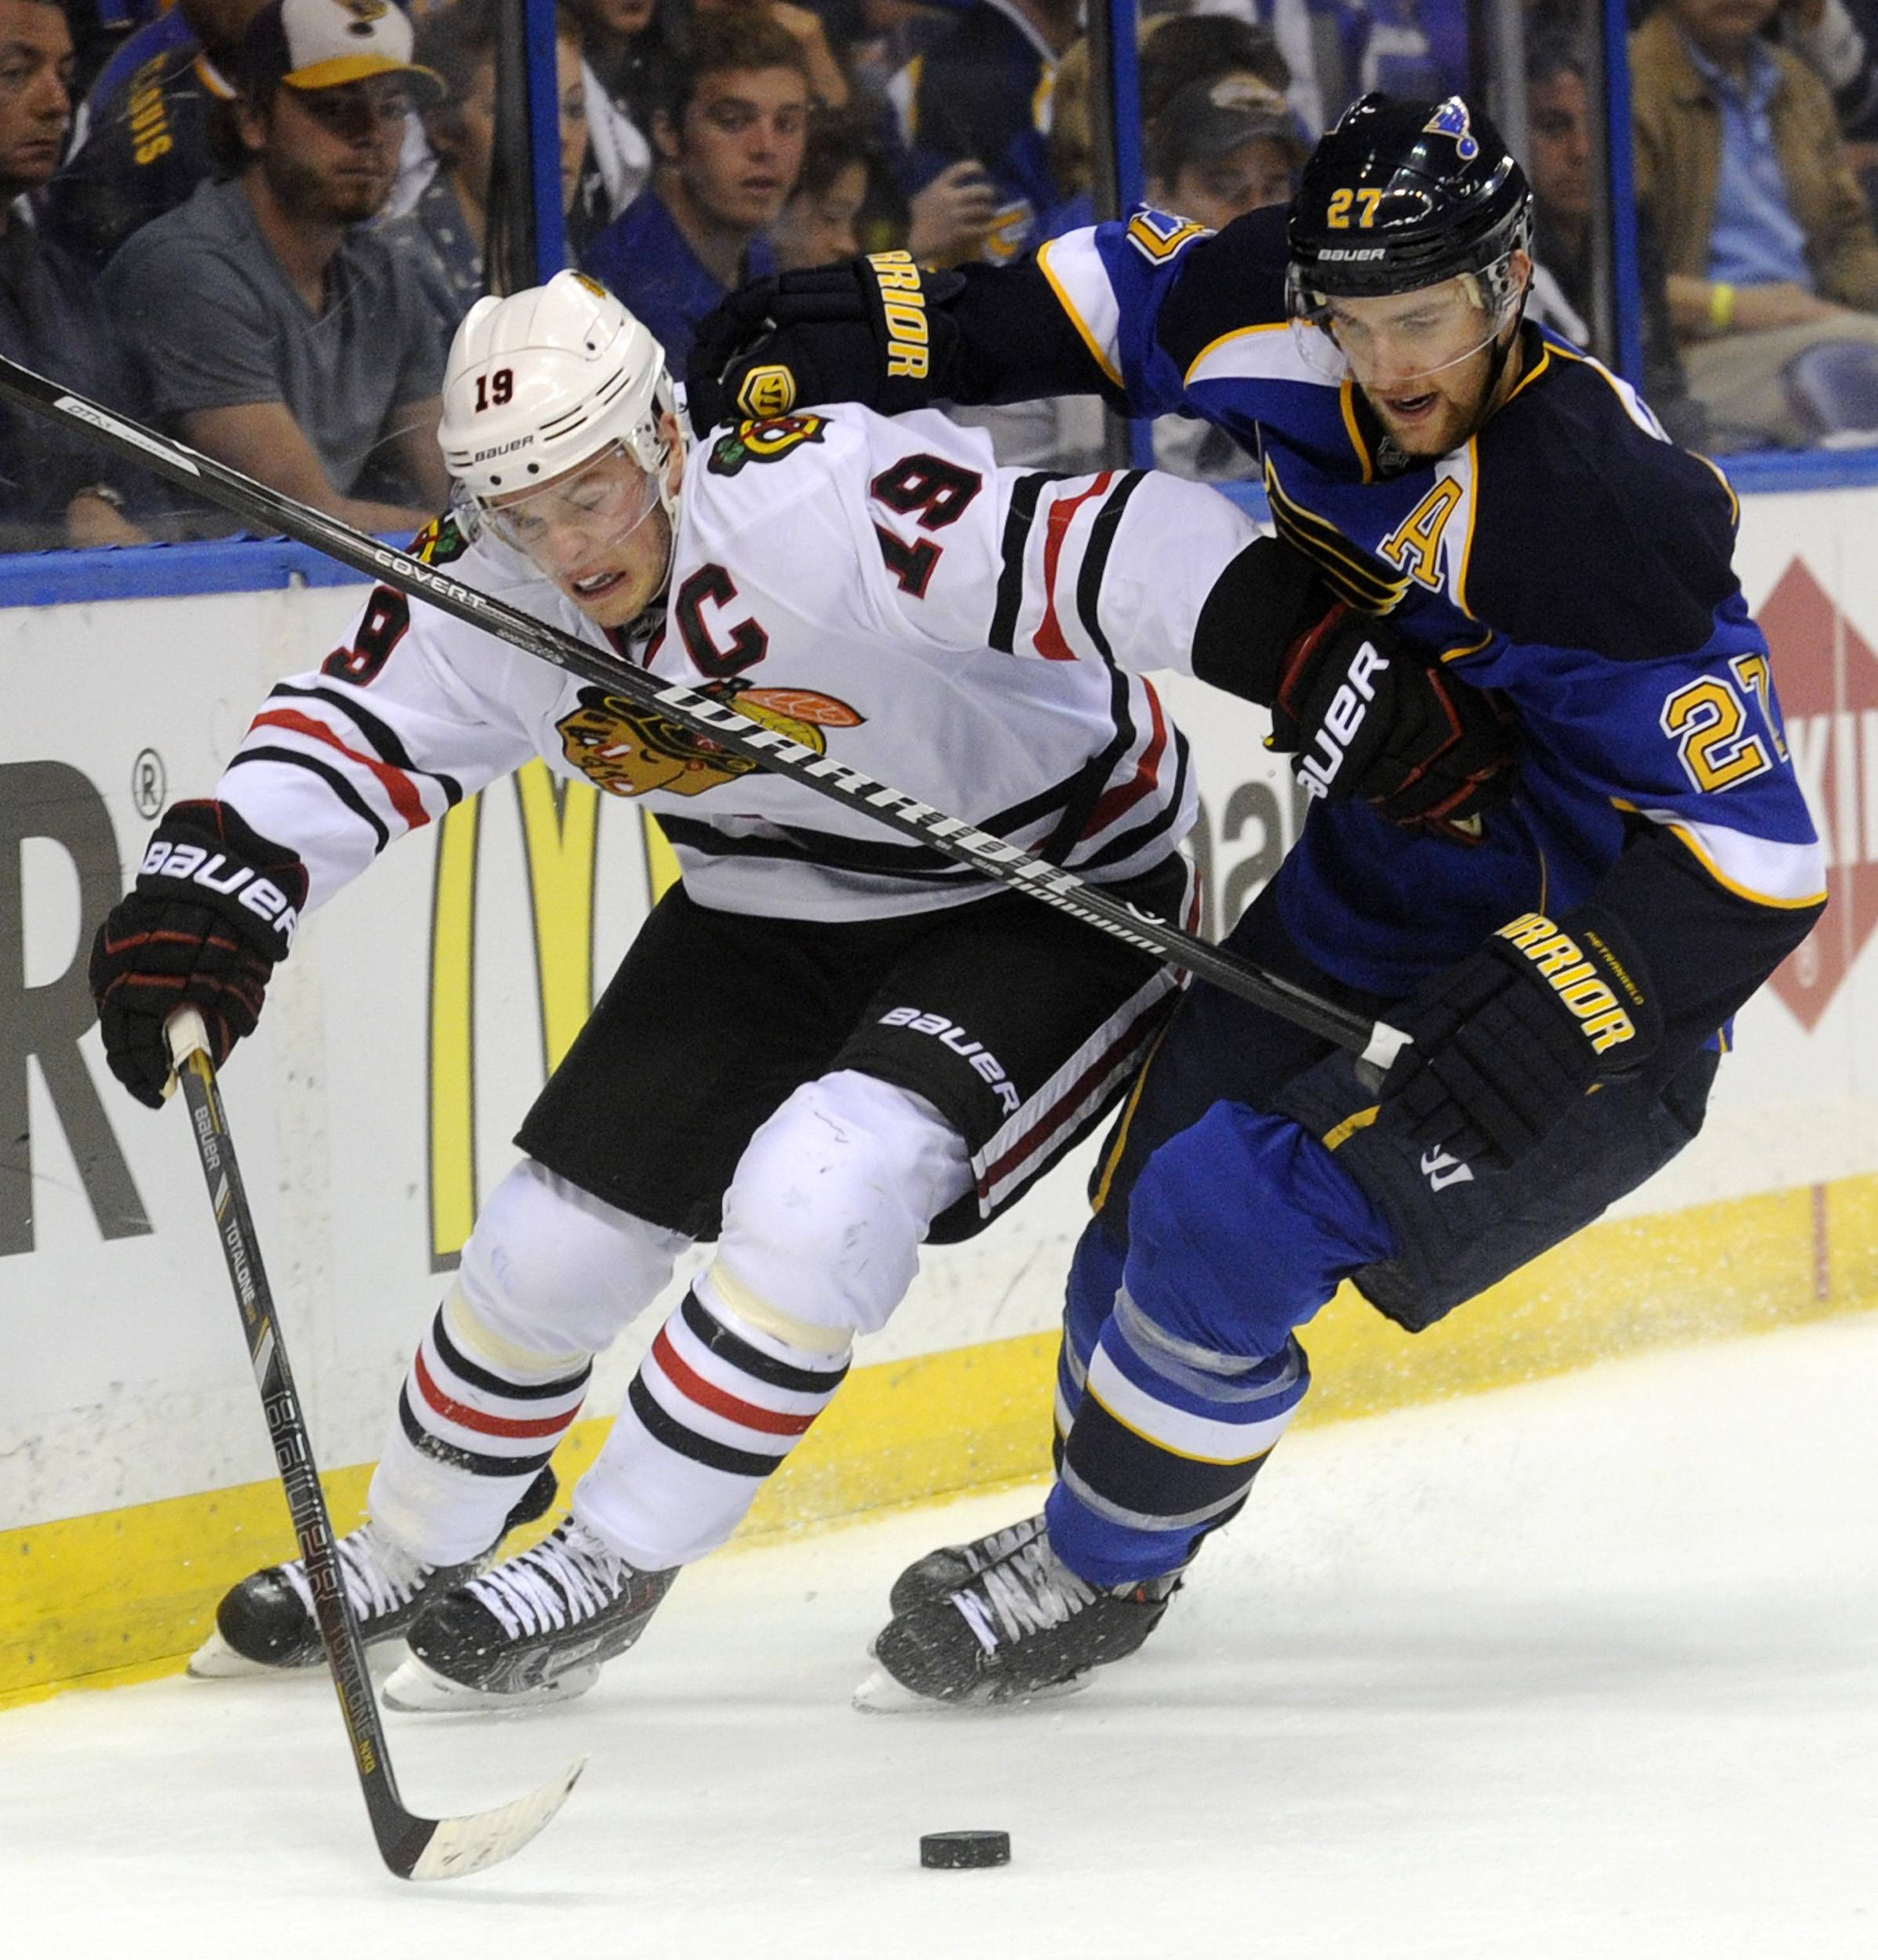 St. Louis Blues' Alex Pietrangelo (27) and Chicago Blackhawks' Jonathan Toews (19) battle for the puck during the first period in Game 2 of a first-round NHL hockey playoff series, Saturday, April 19, 2014, in St. Louis.